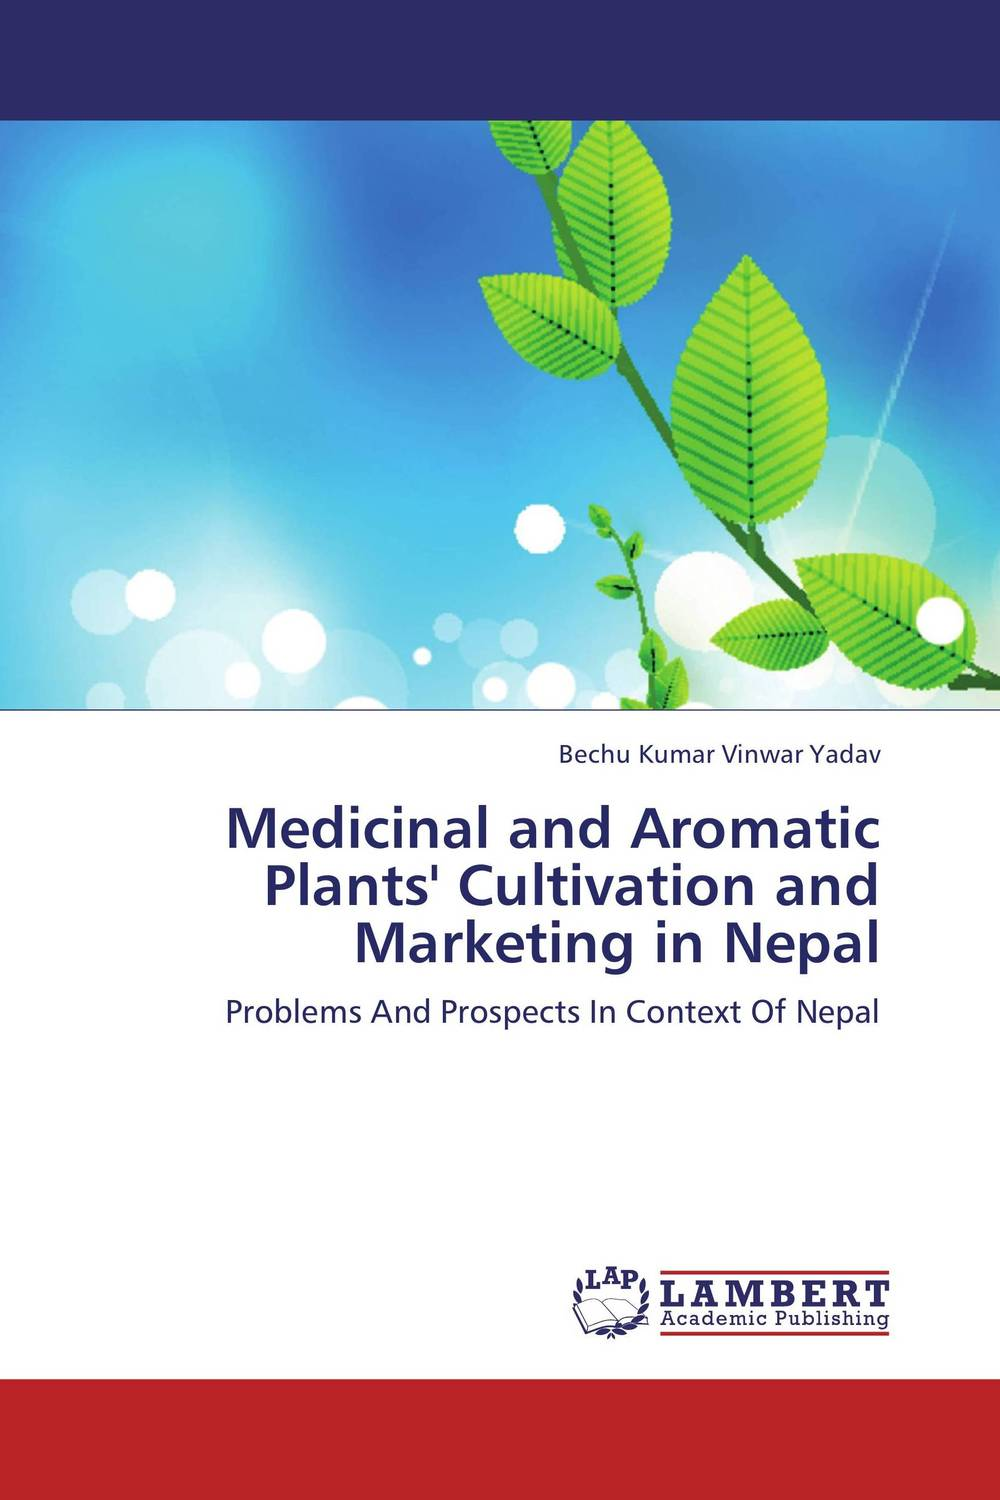 Medicinal and Aromatic Plants' Cultivation and Marketing in Nepal george varghese diana john and solomon habtemariam medicinal plants for kidney stone a monograph